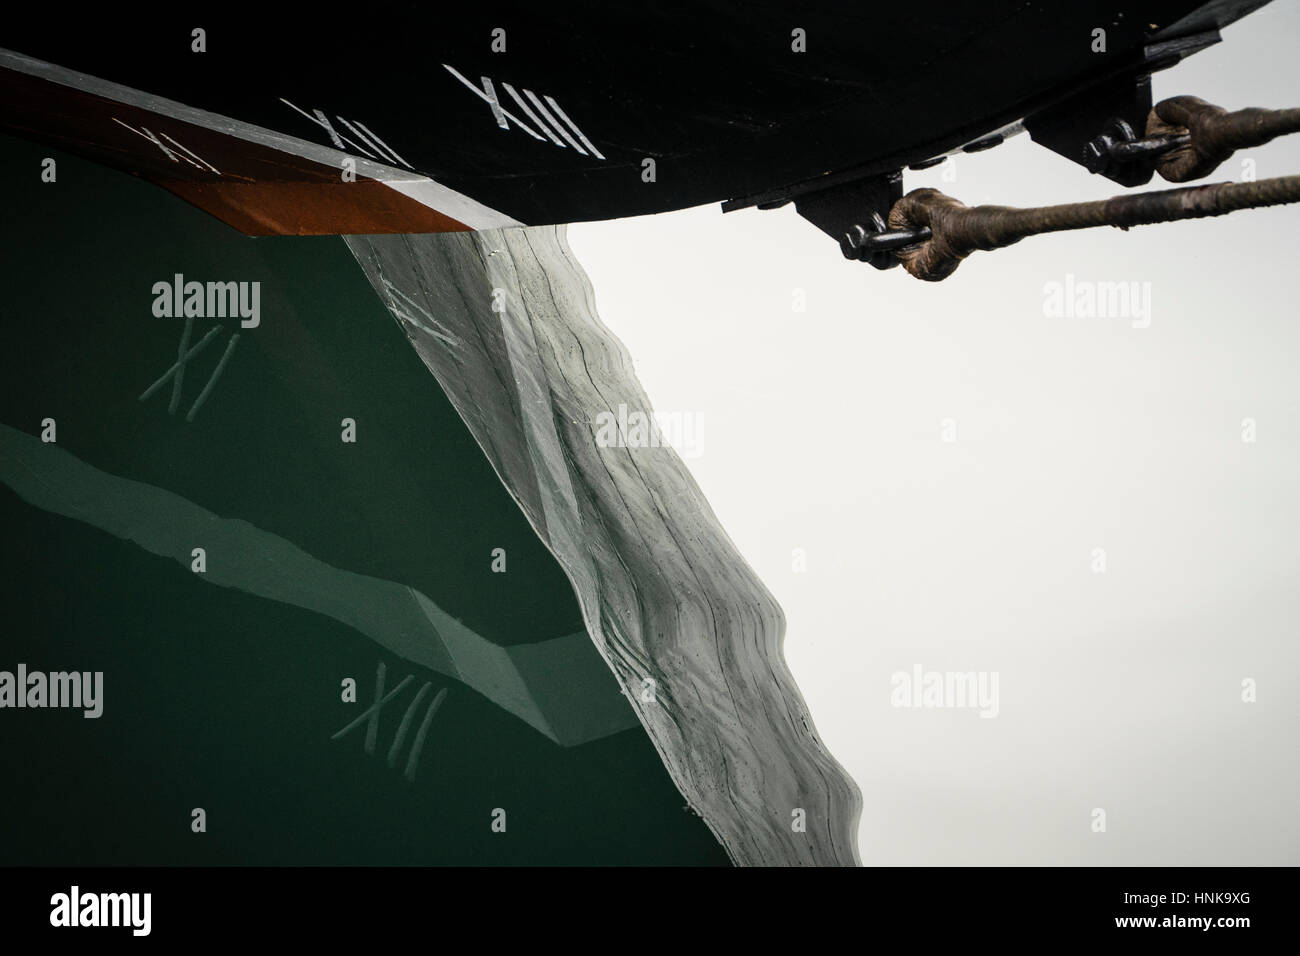 Bow of the replica schooner 'Bluenose II' reflects on the waters of Halifax Harbour, Nova Scotia, Canada. - Stock Image